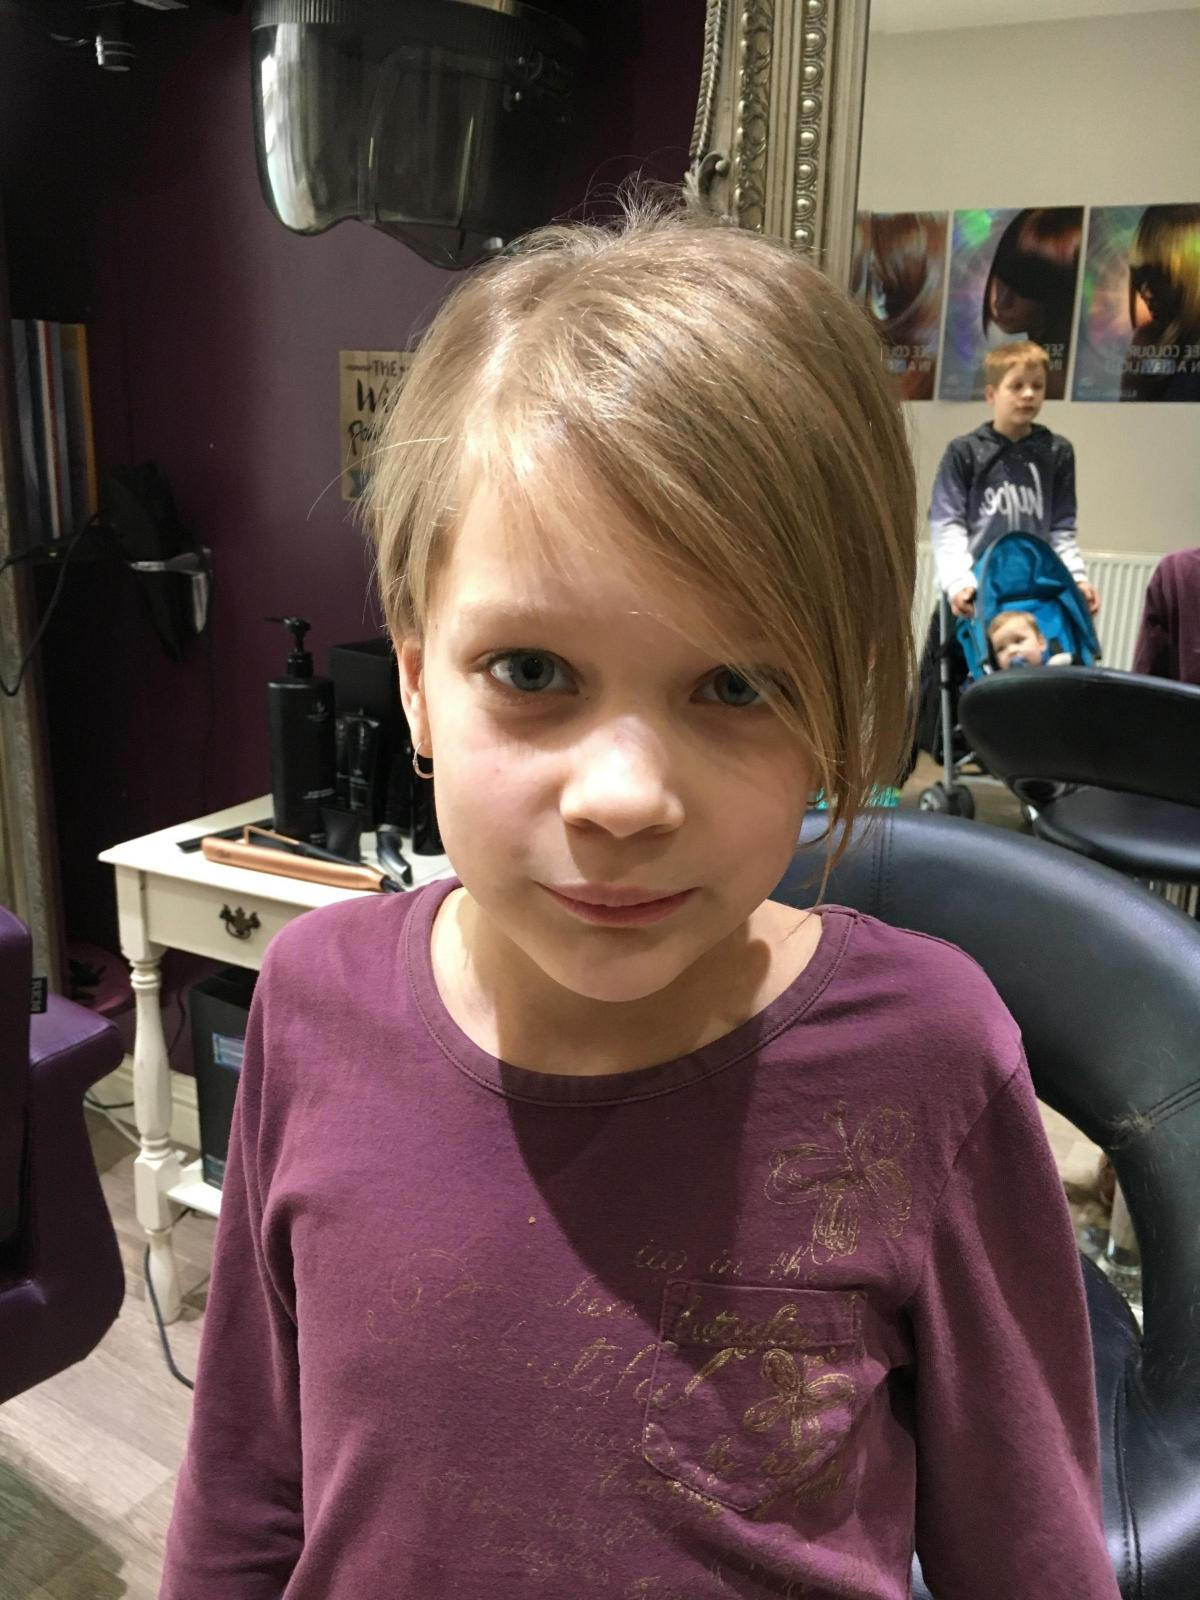 Nine Year Old Girl Gets Her Hair Cut For Little Princess Trust